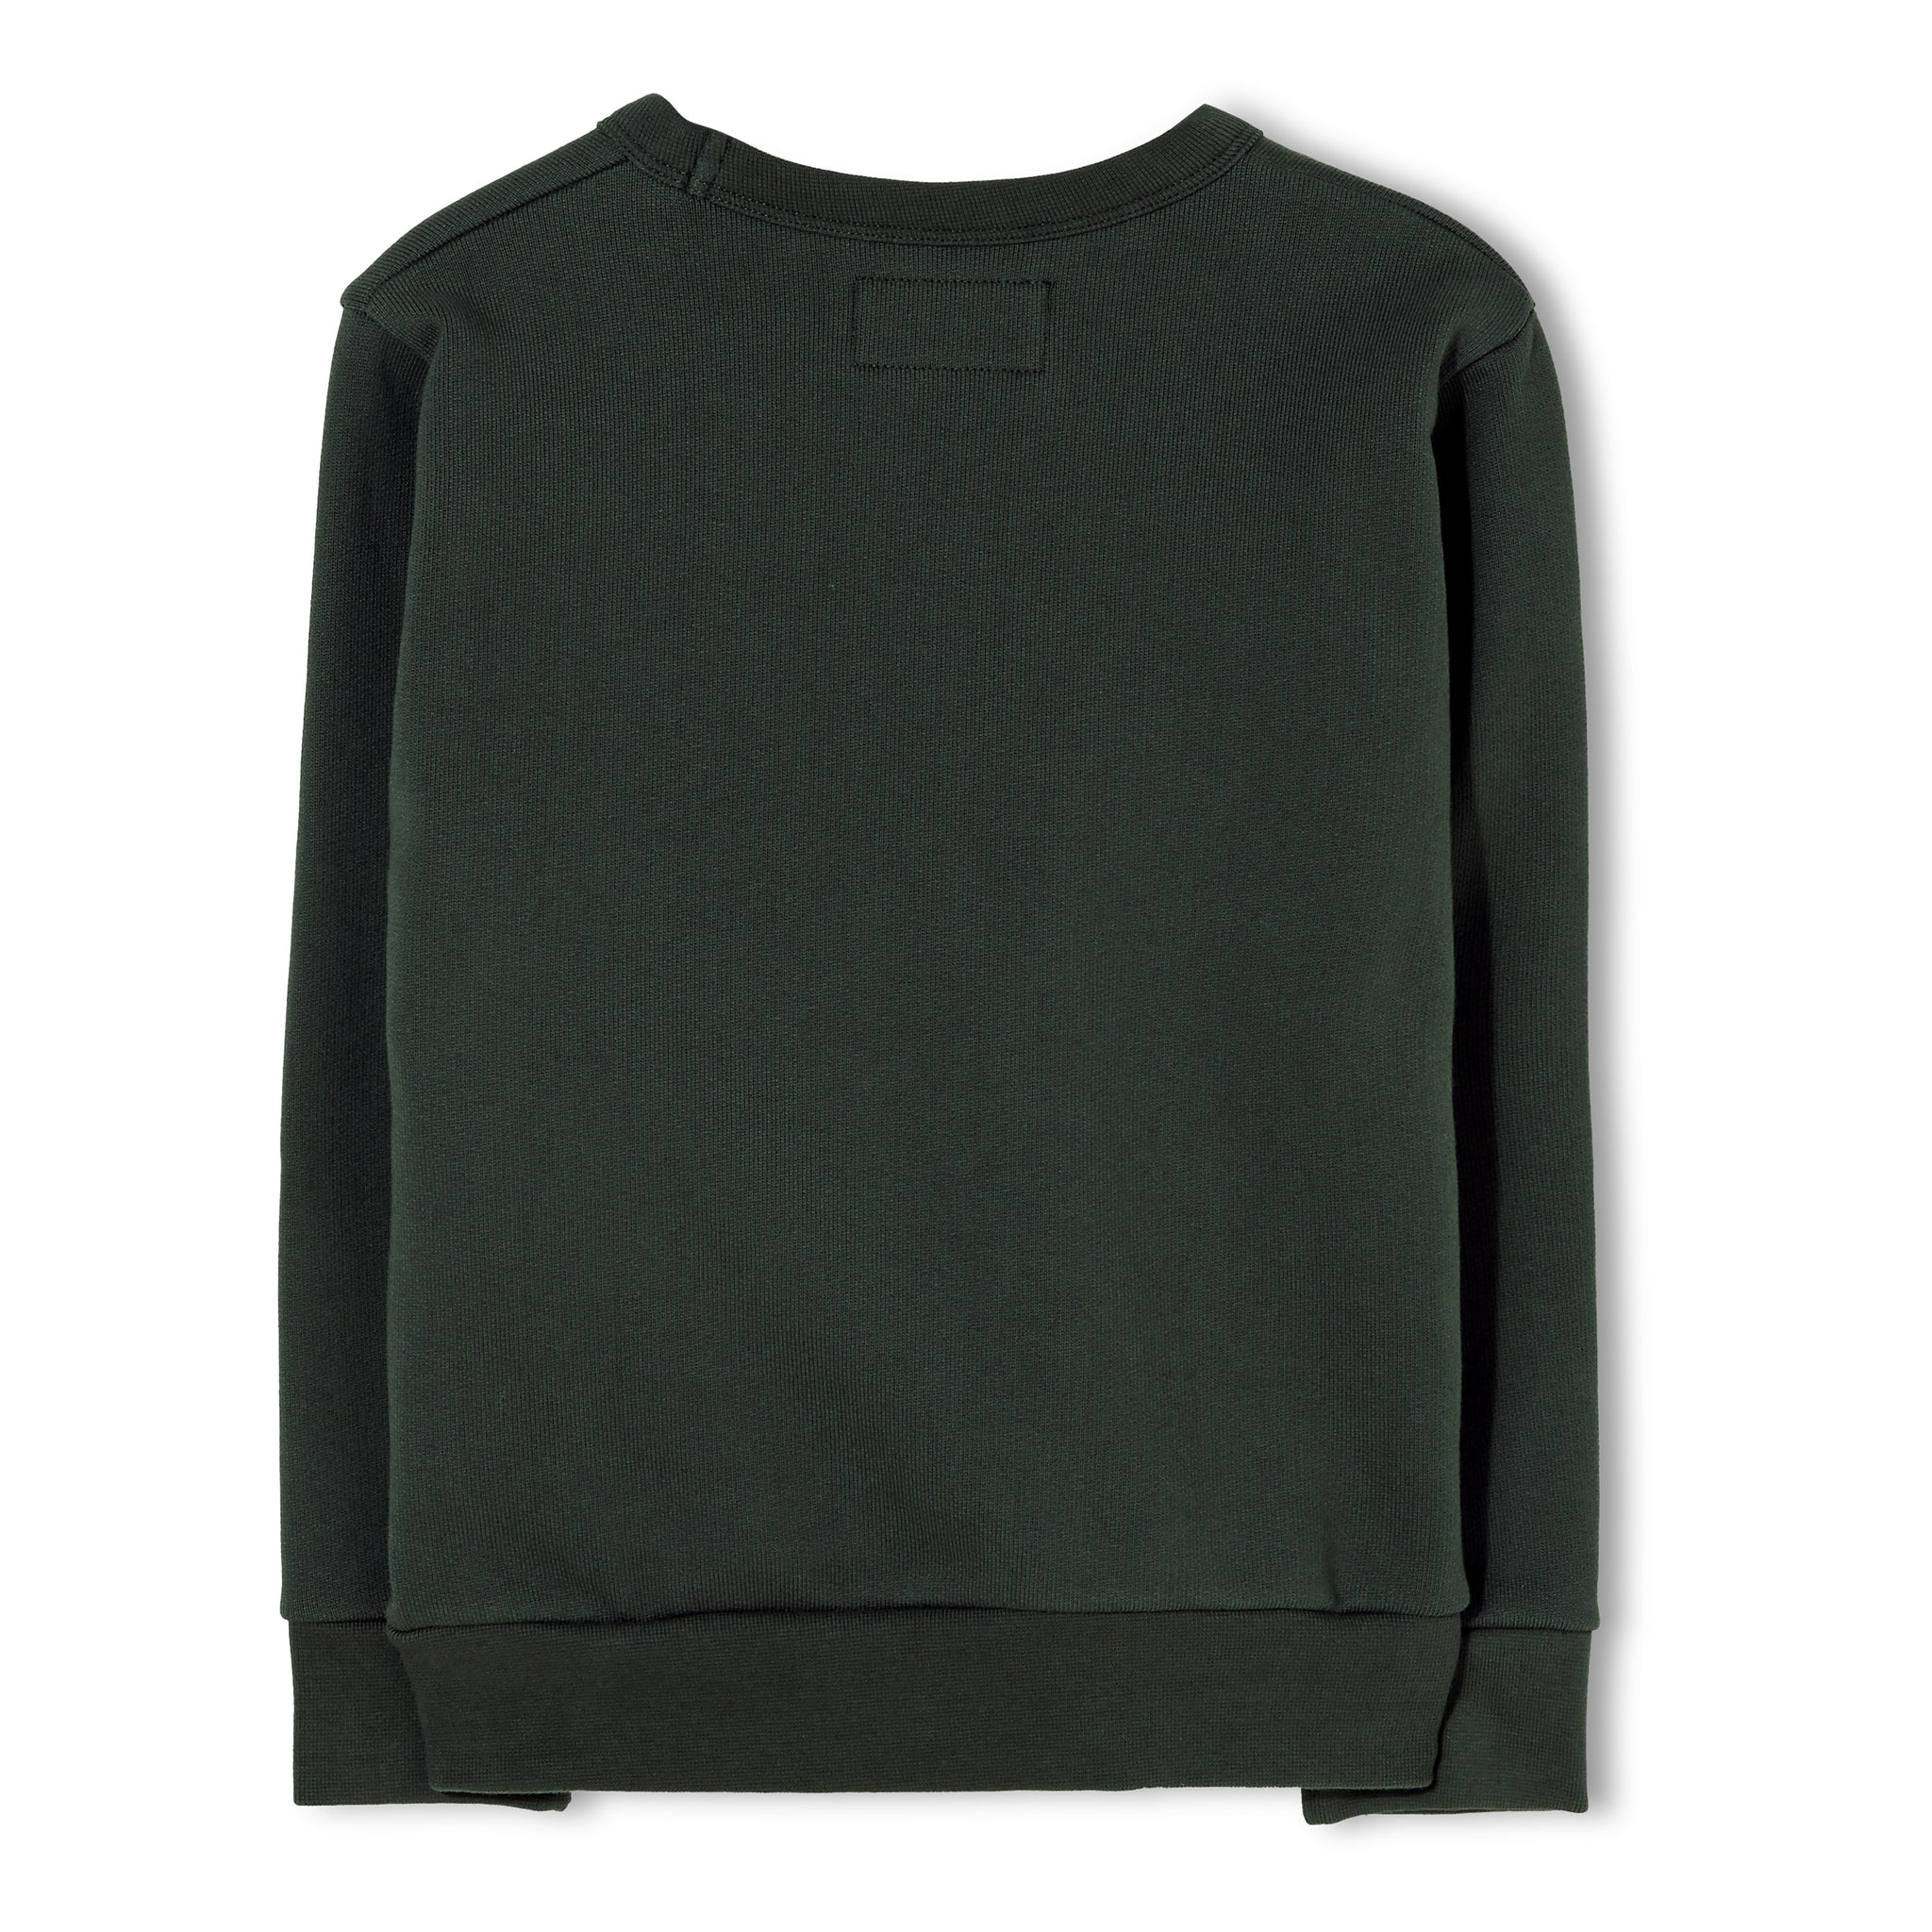 BRIAN Ash Black Moto - Crew Neck Sweater 2